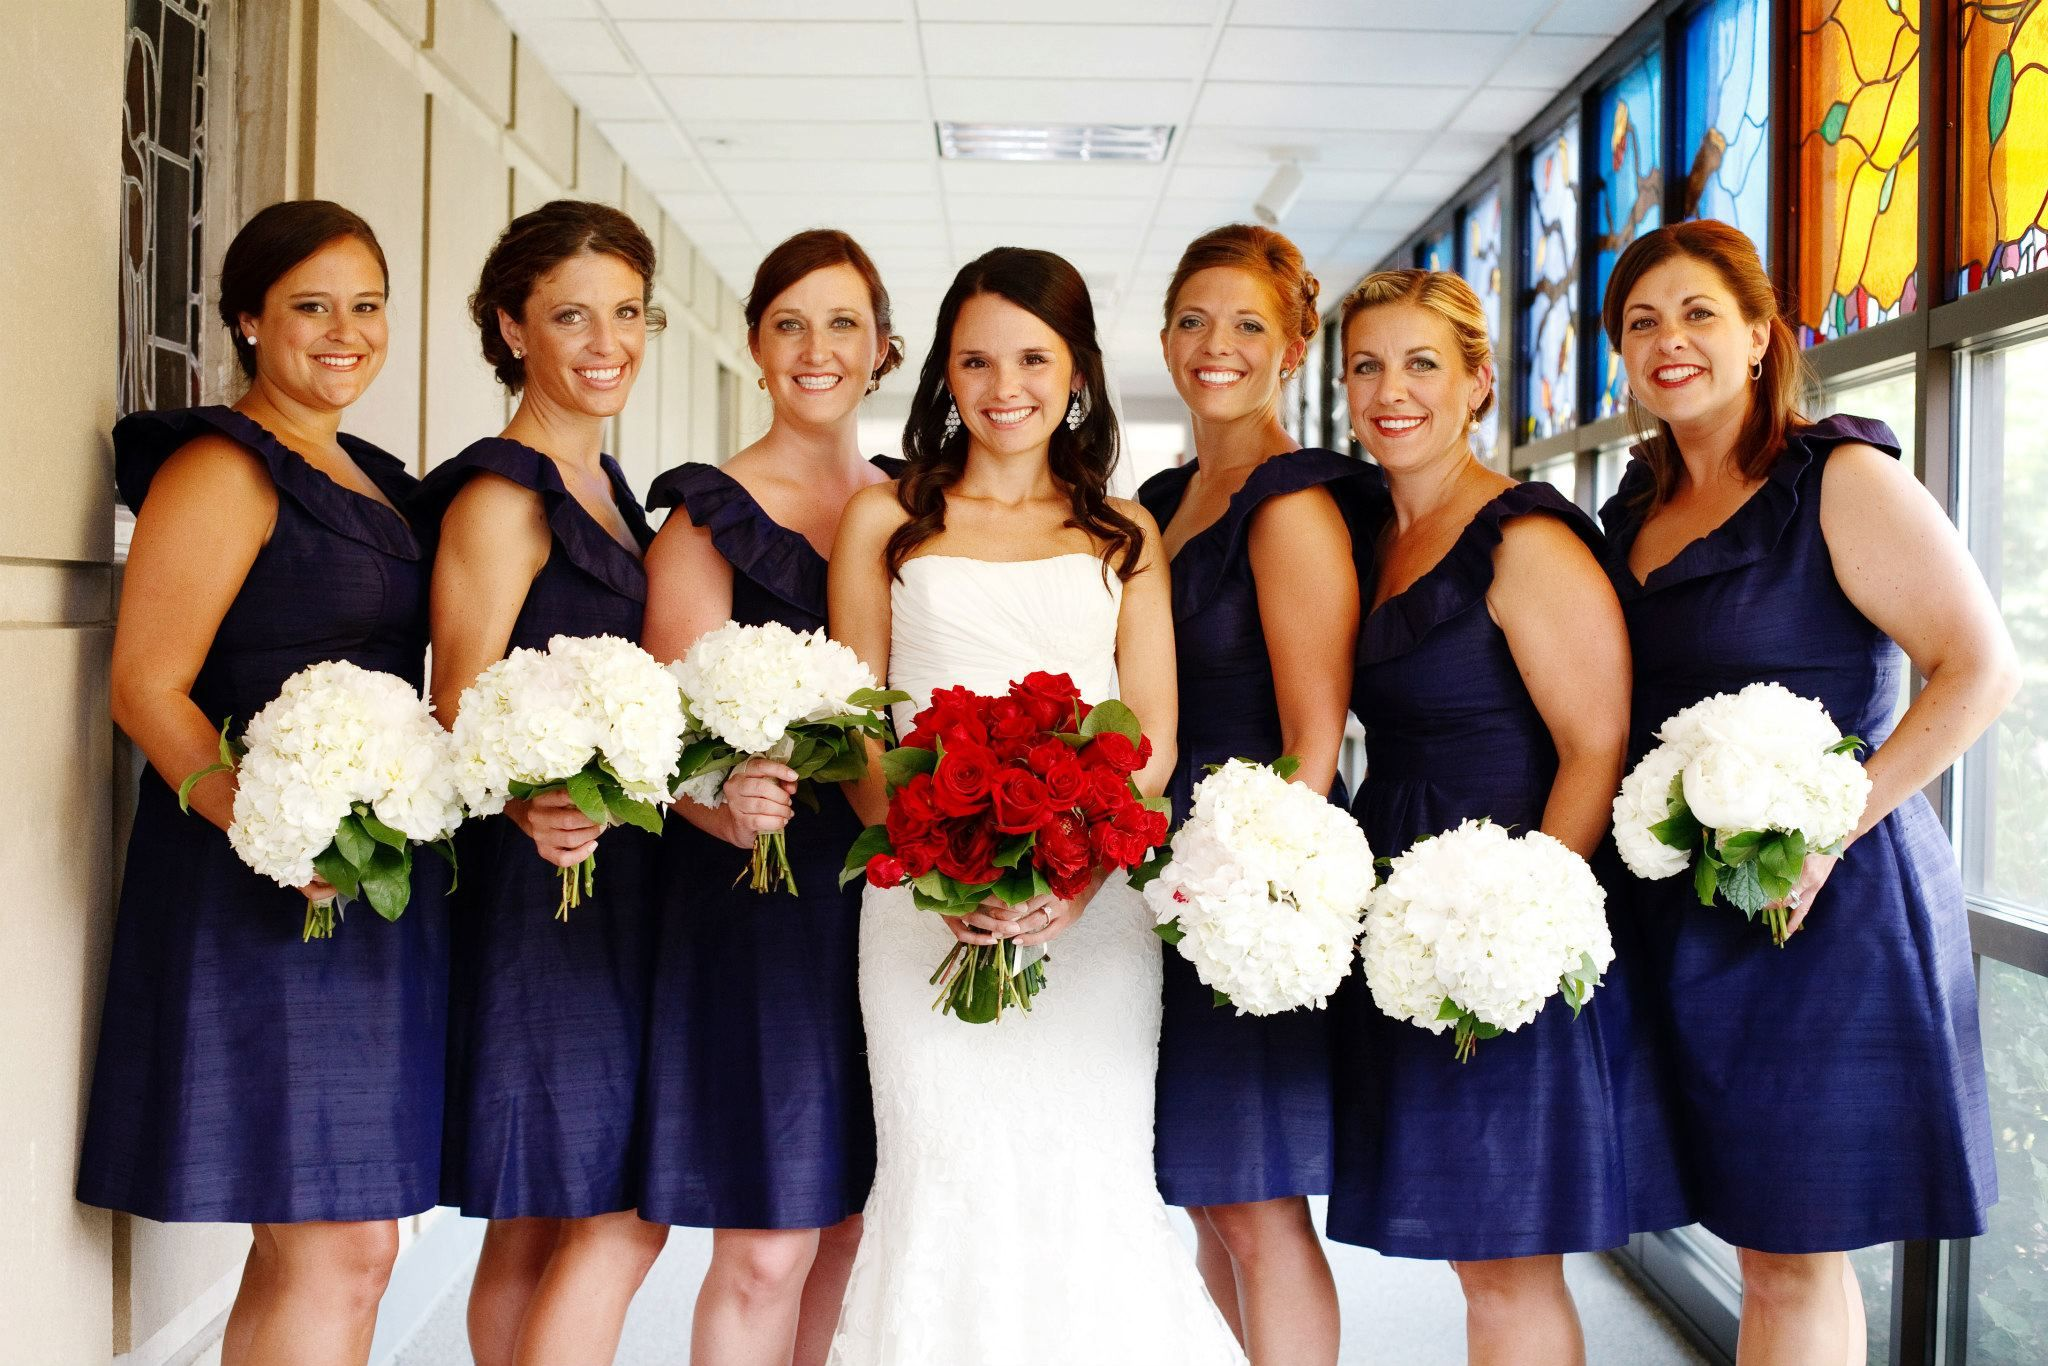 Mississippi wedding bella bridesmaid red white blue flowers mississippi wedding bella bridesmaid red white blue flowers ombrellifo Gallery